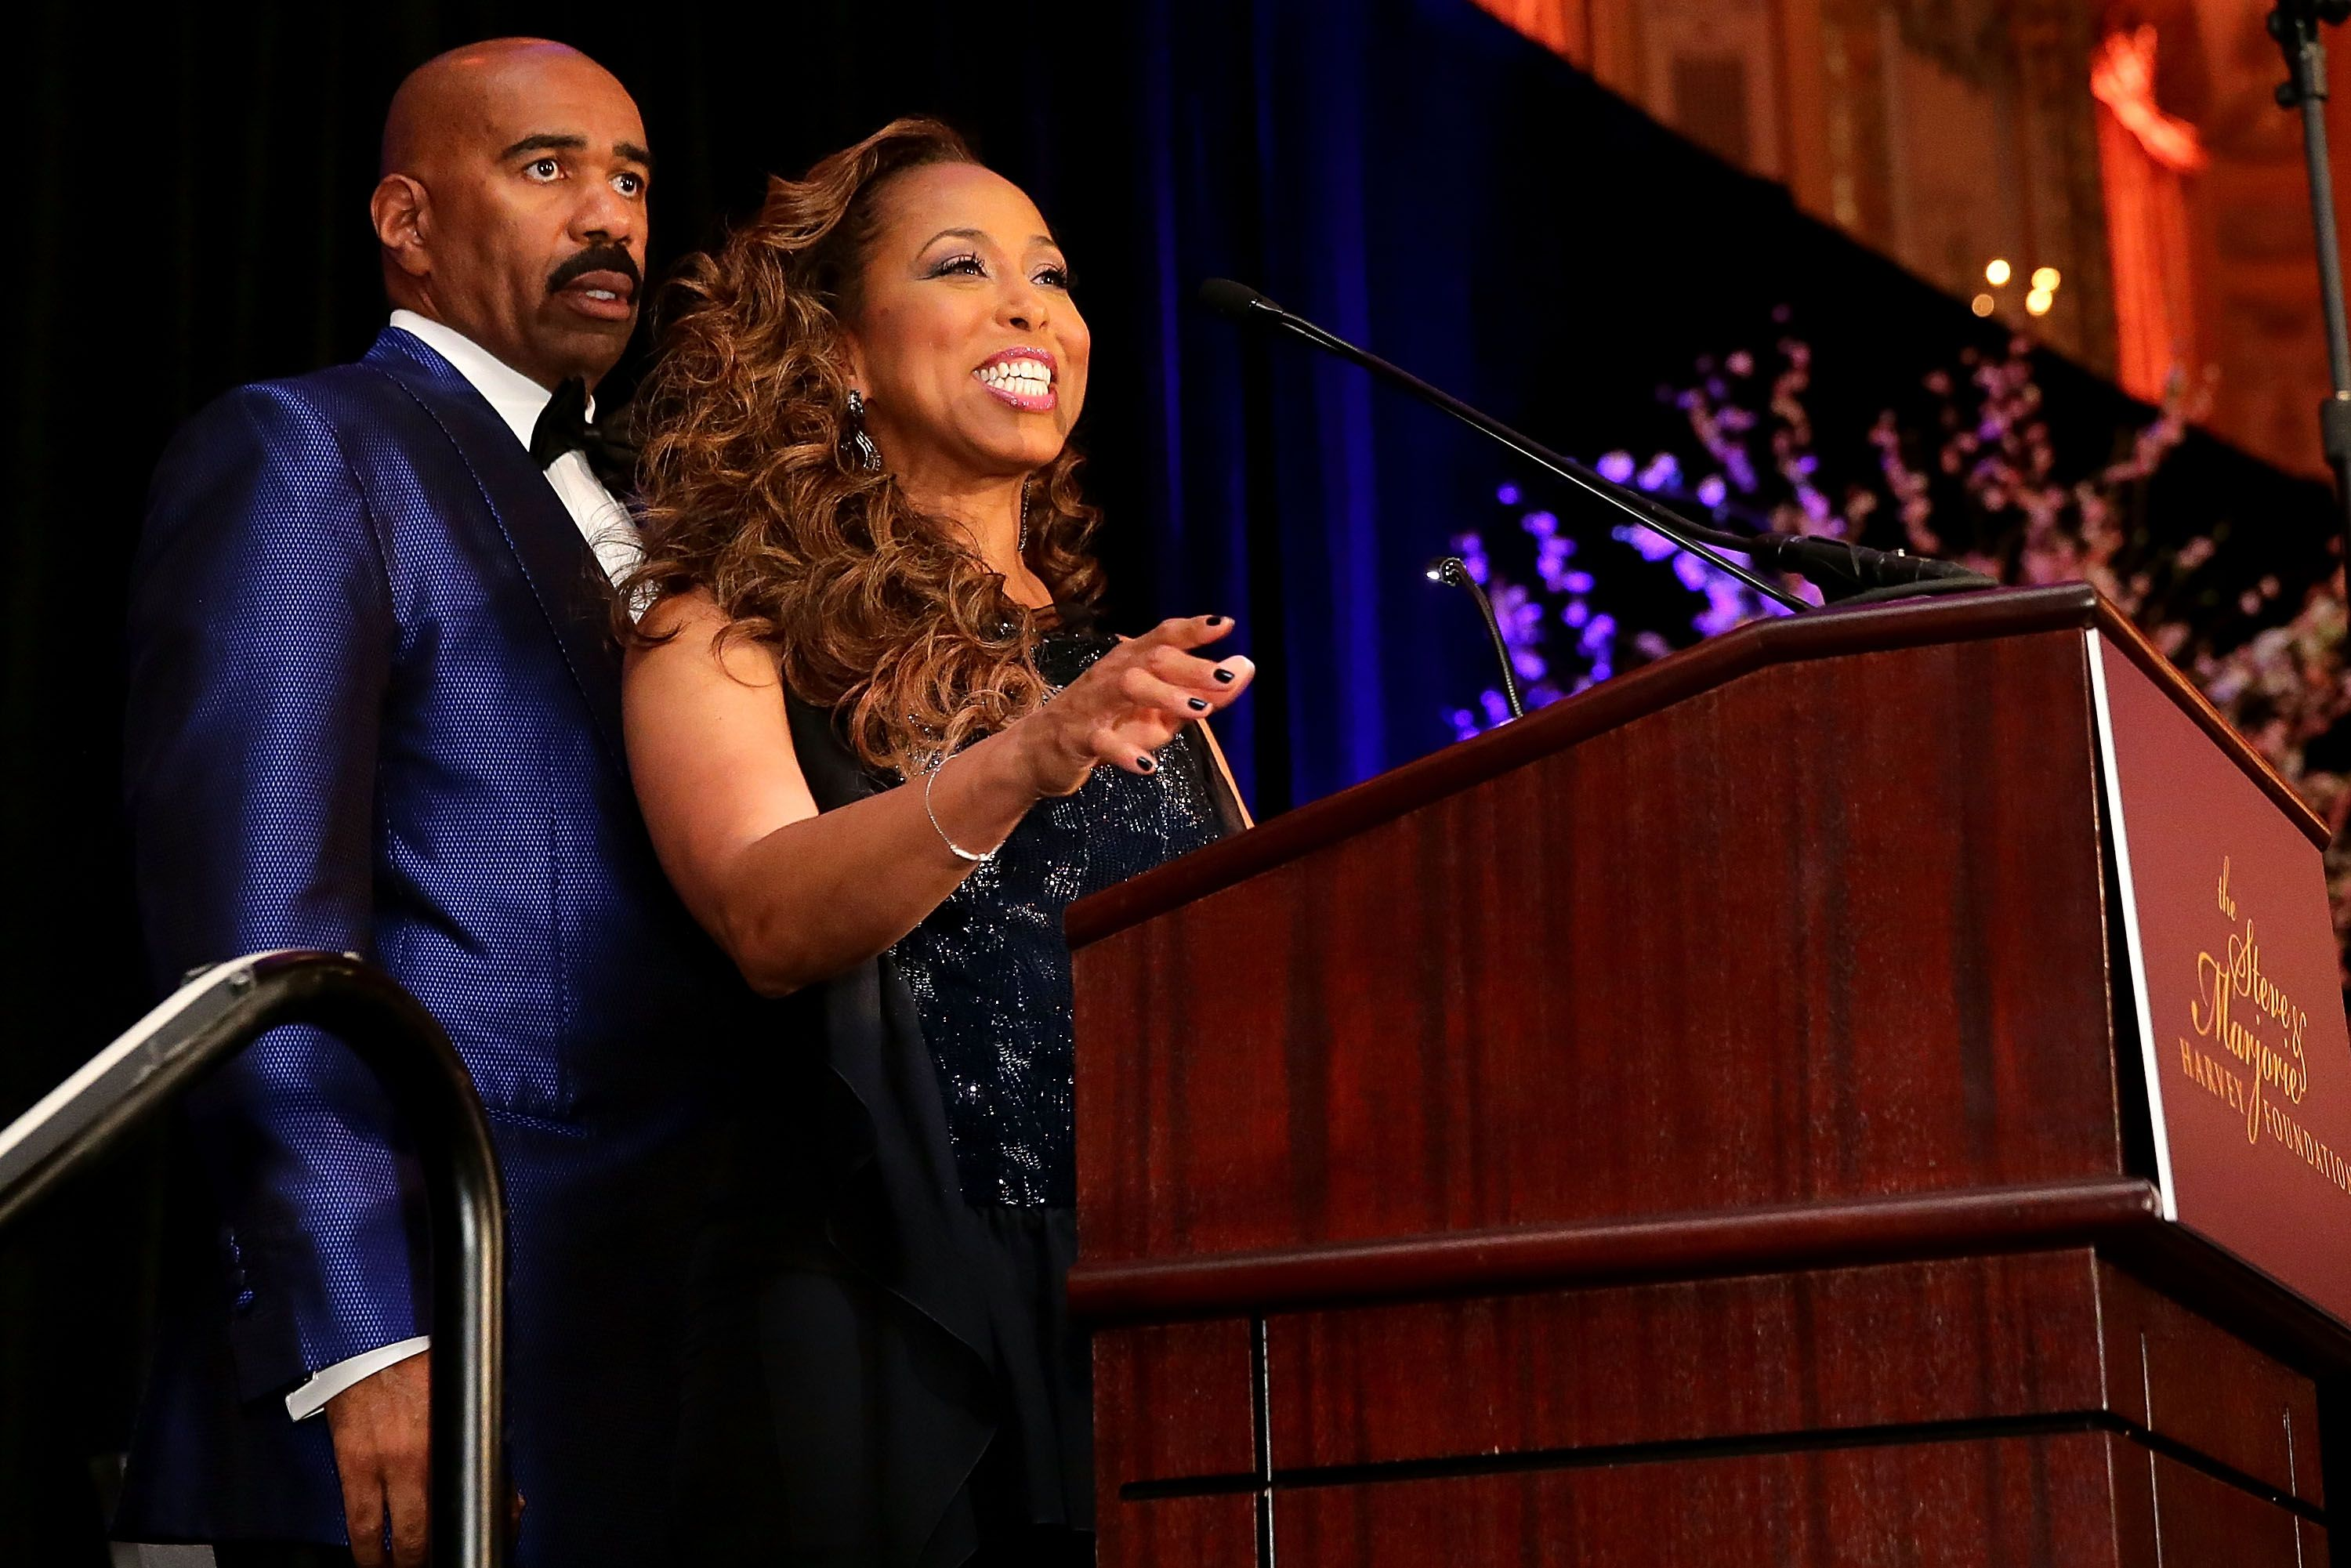 Steve and Marjorie Harvey at the 2014 Steve & Marjorie Harvey Foundation Gala in Chicago | Source: Getty Images